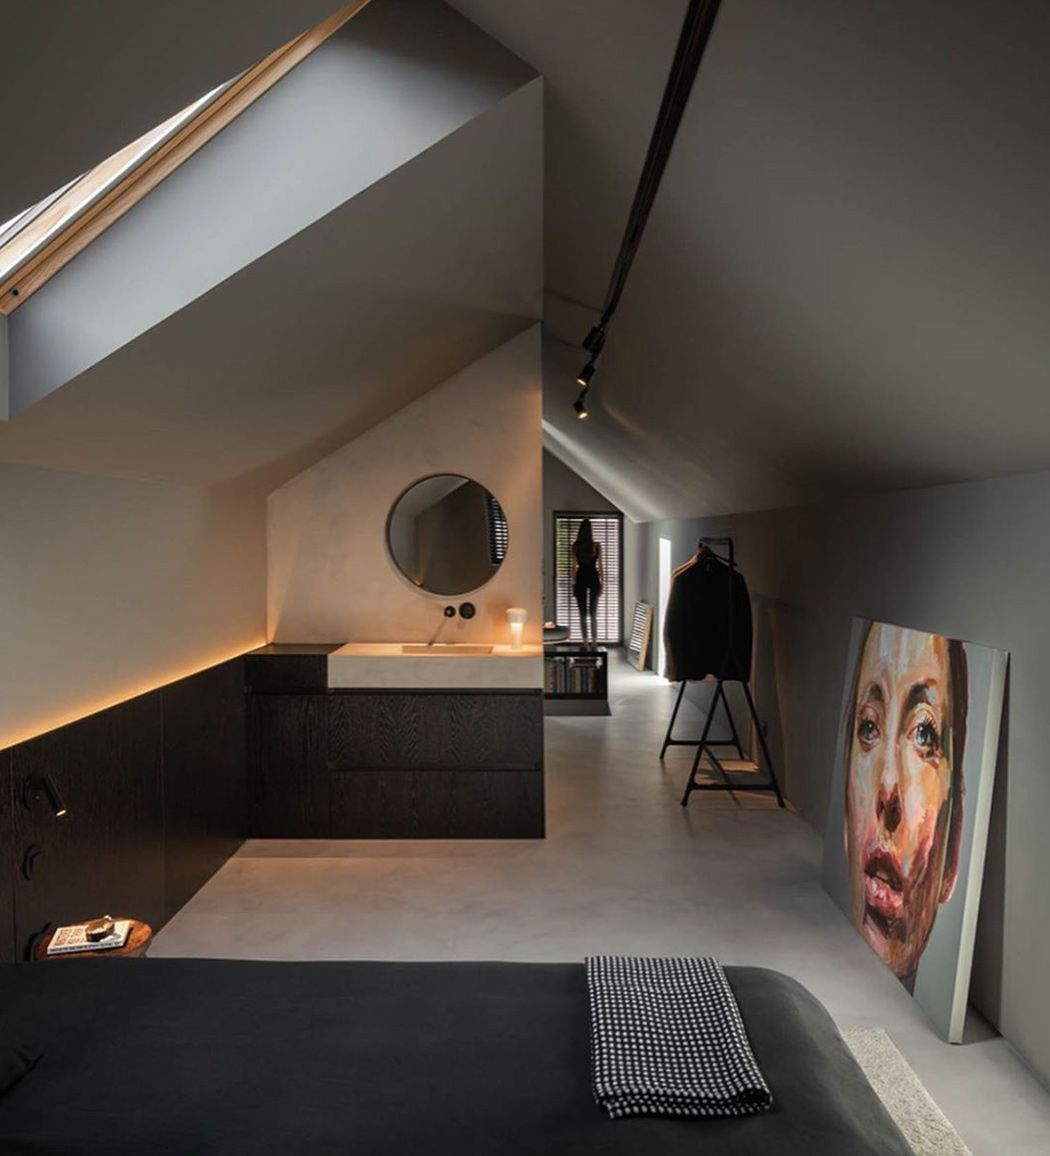 All black interior designs that will inspire you to adapt this modern  minimal trend | Yanko Design in 2020 | Black interior design, Interior  design, Interior